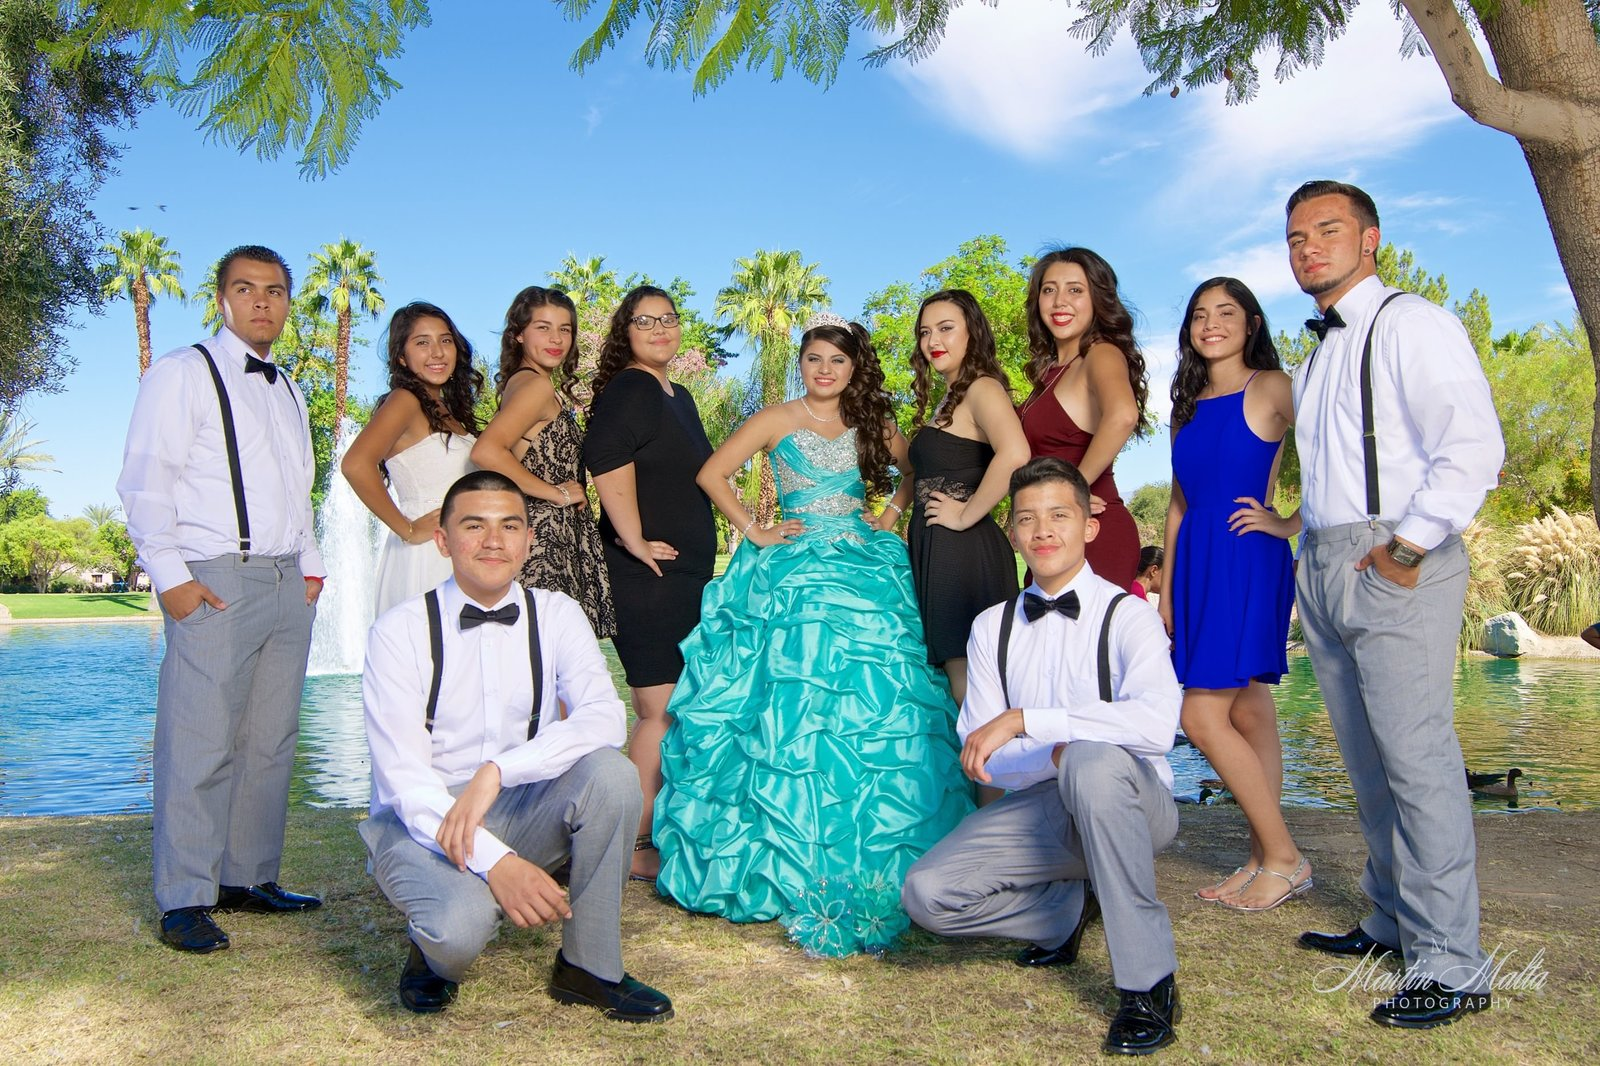 photography-photographer-wedding-quinceanera-xv-383